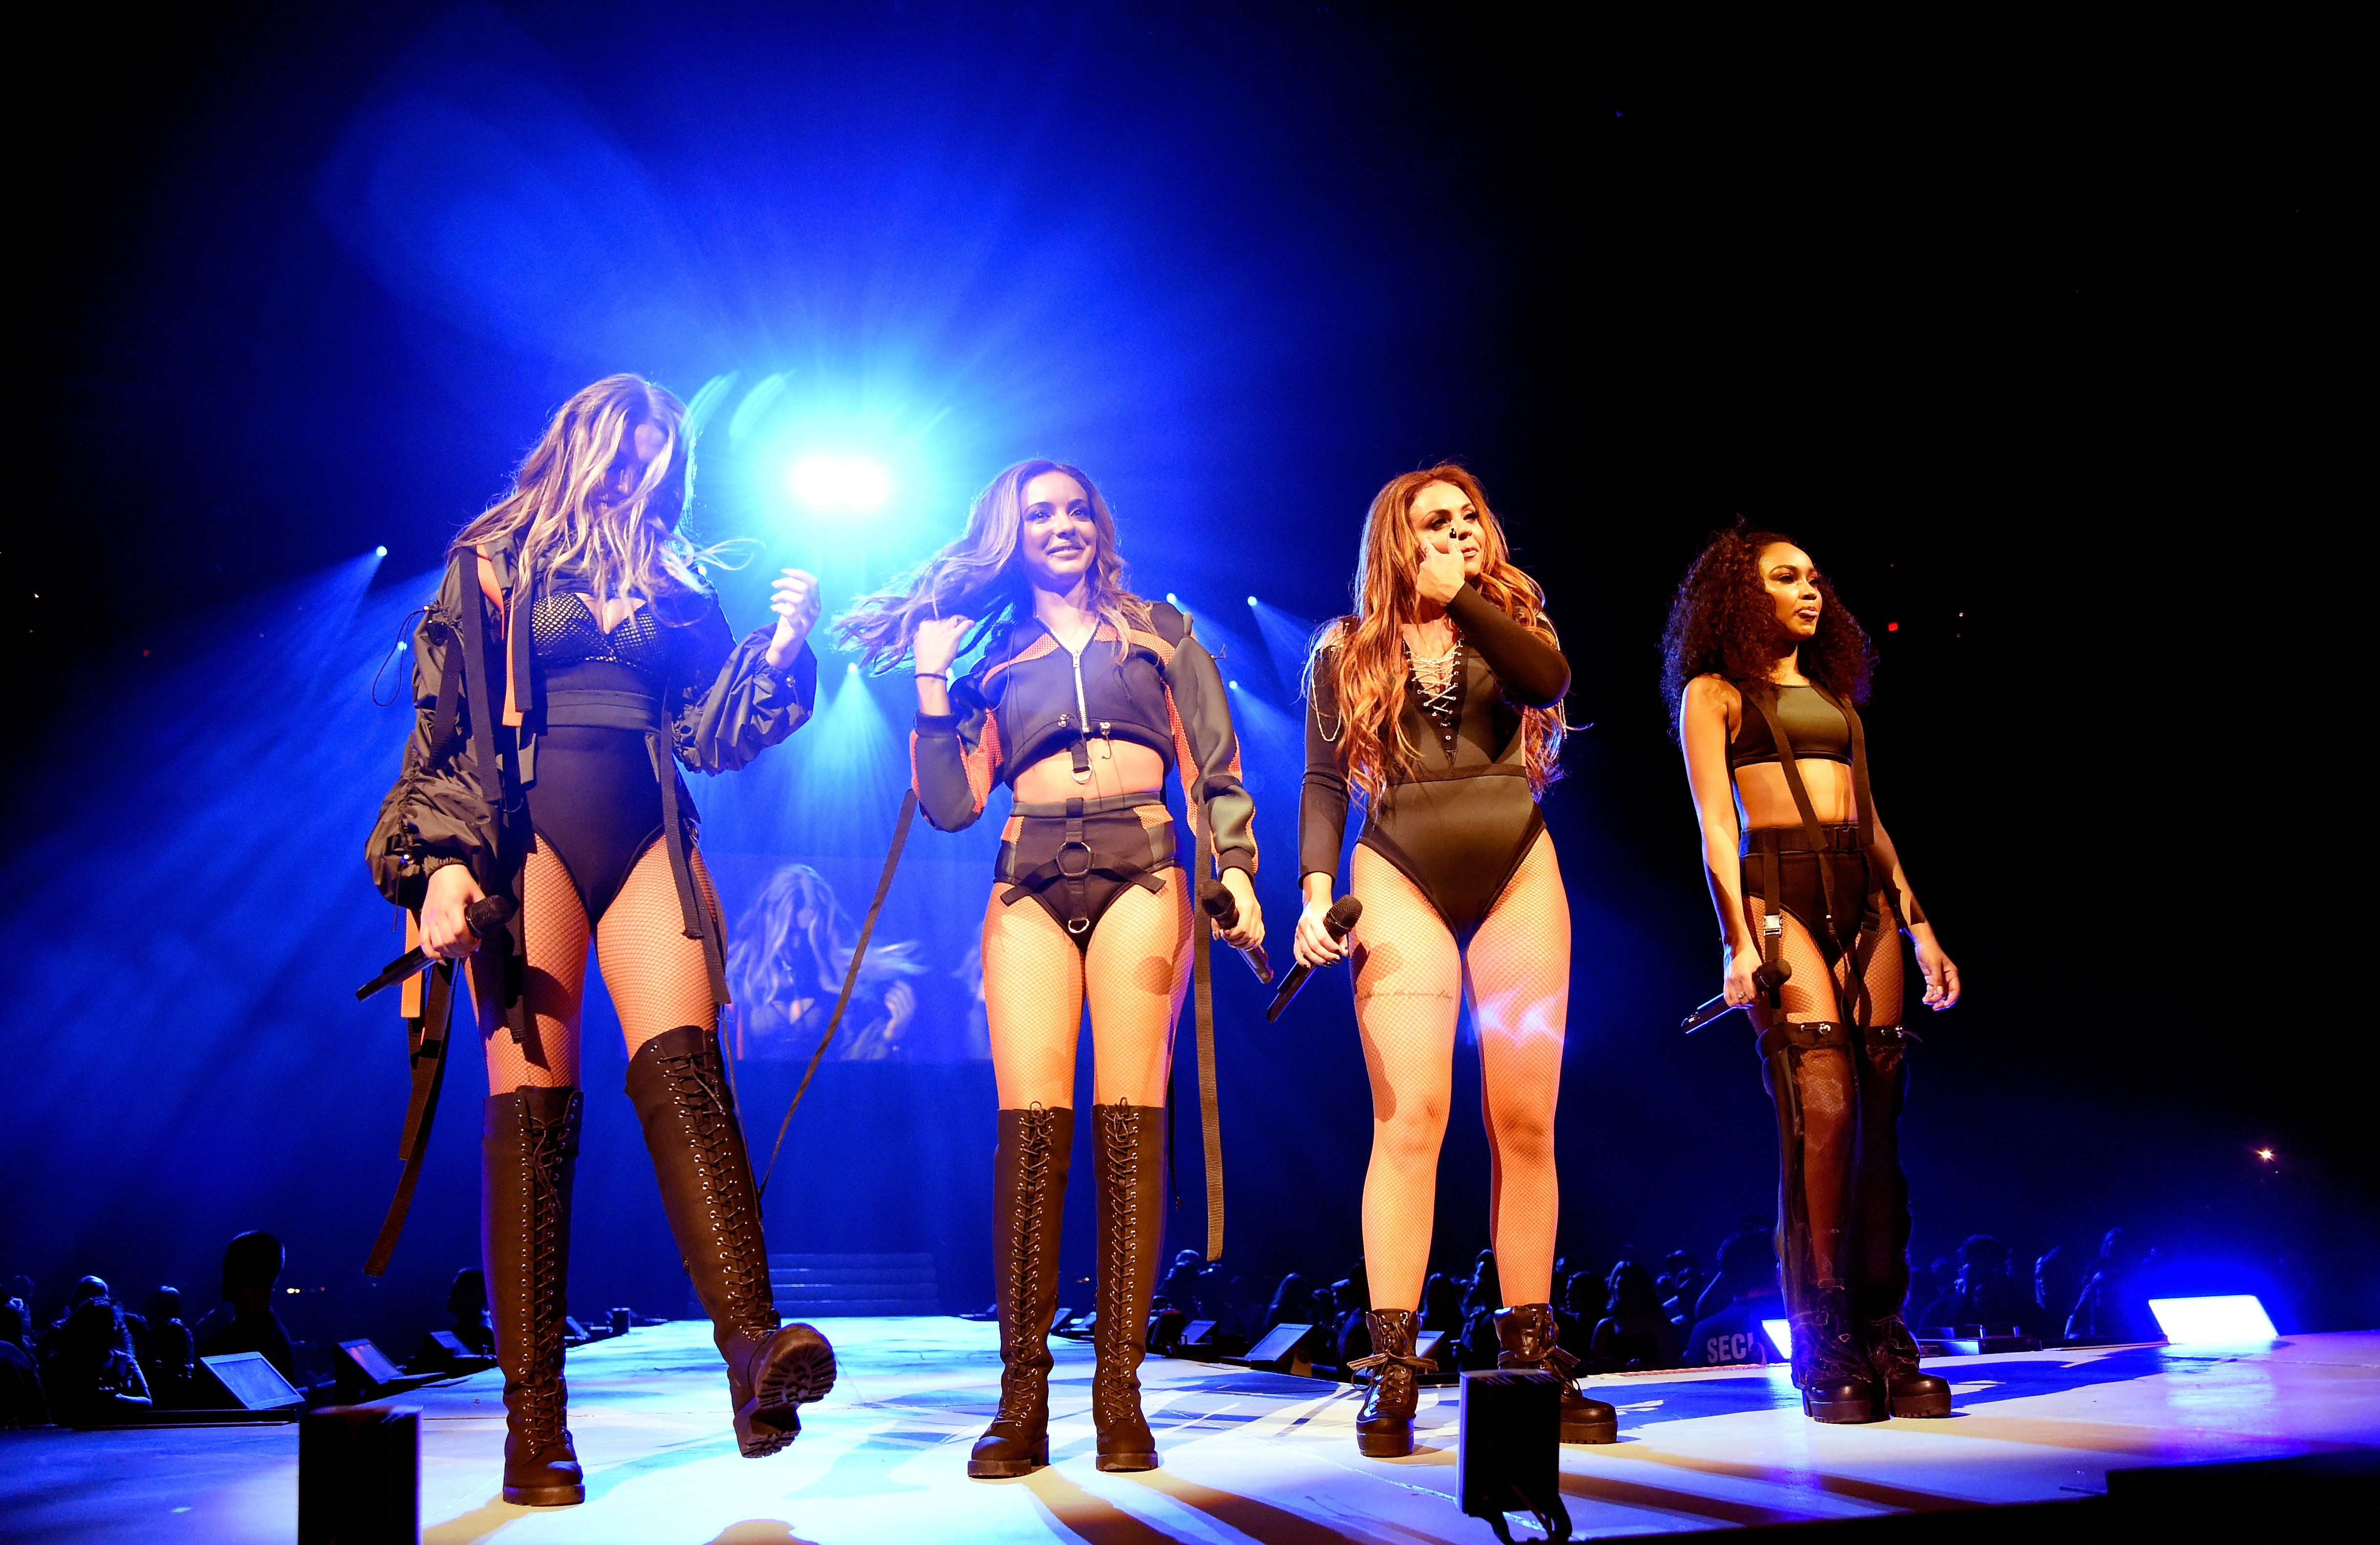 Little Mix Insist Revealing Stage Outfits Don't Conflict With Their Feminist